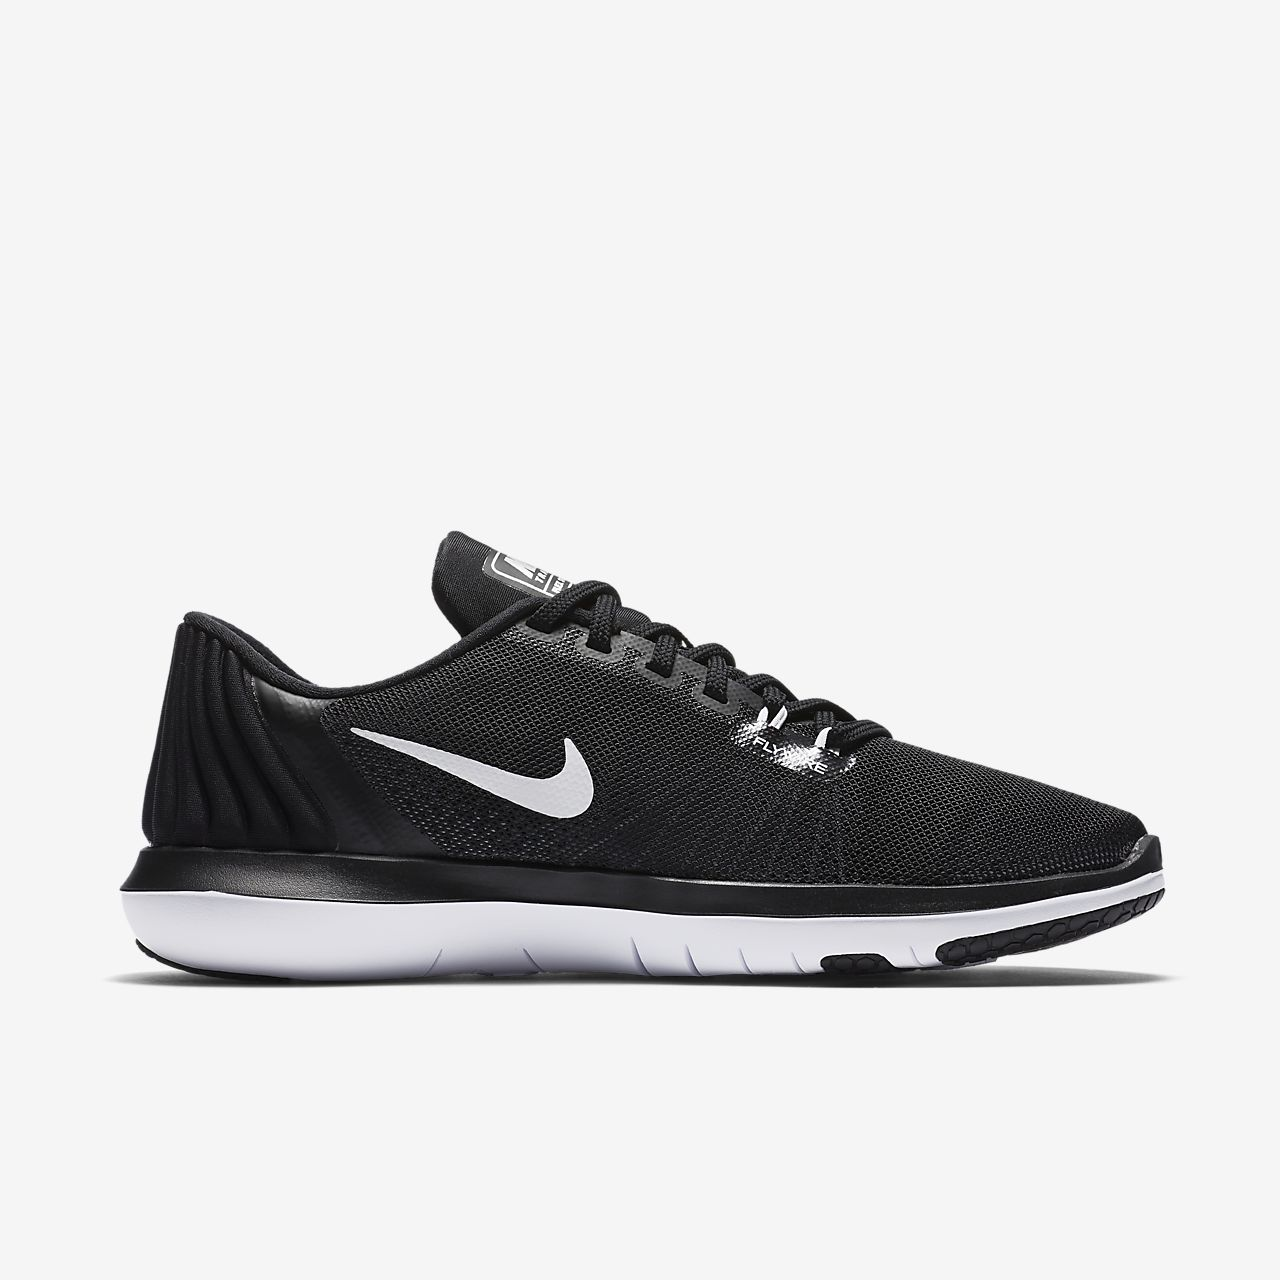 Nike Running Shoes With Arch Support Men